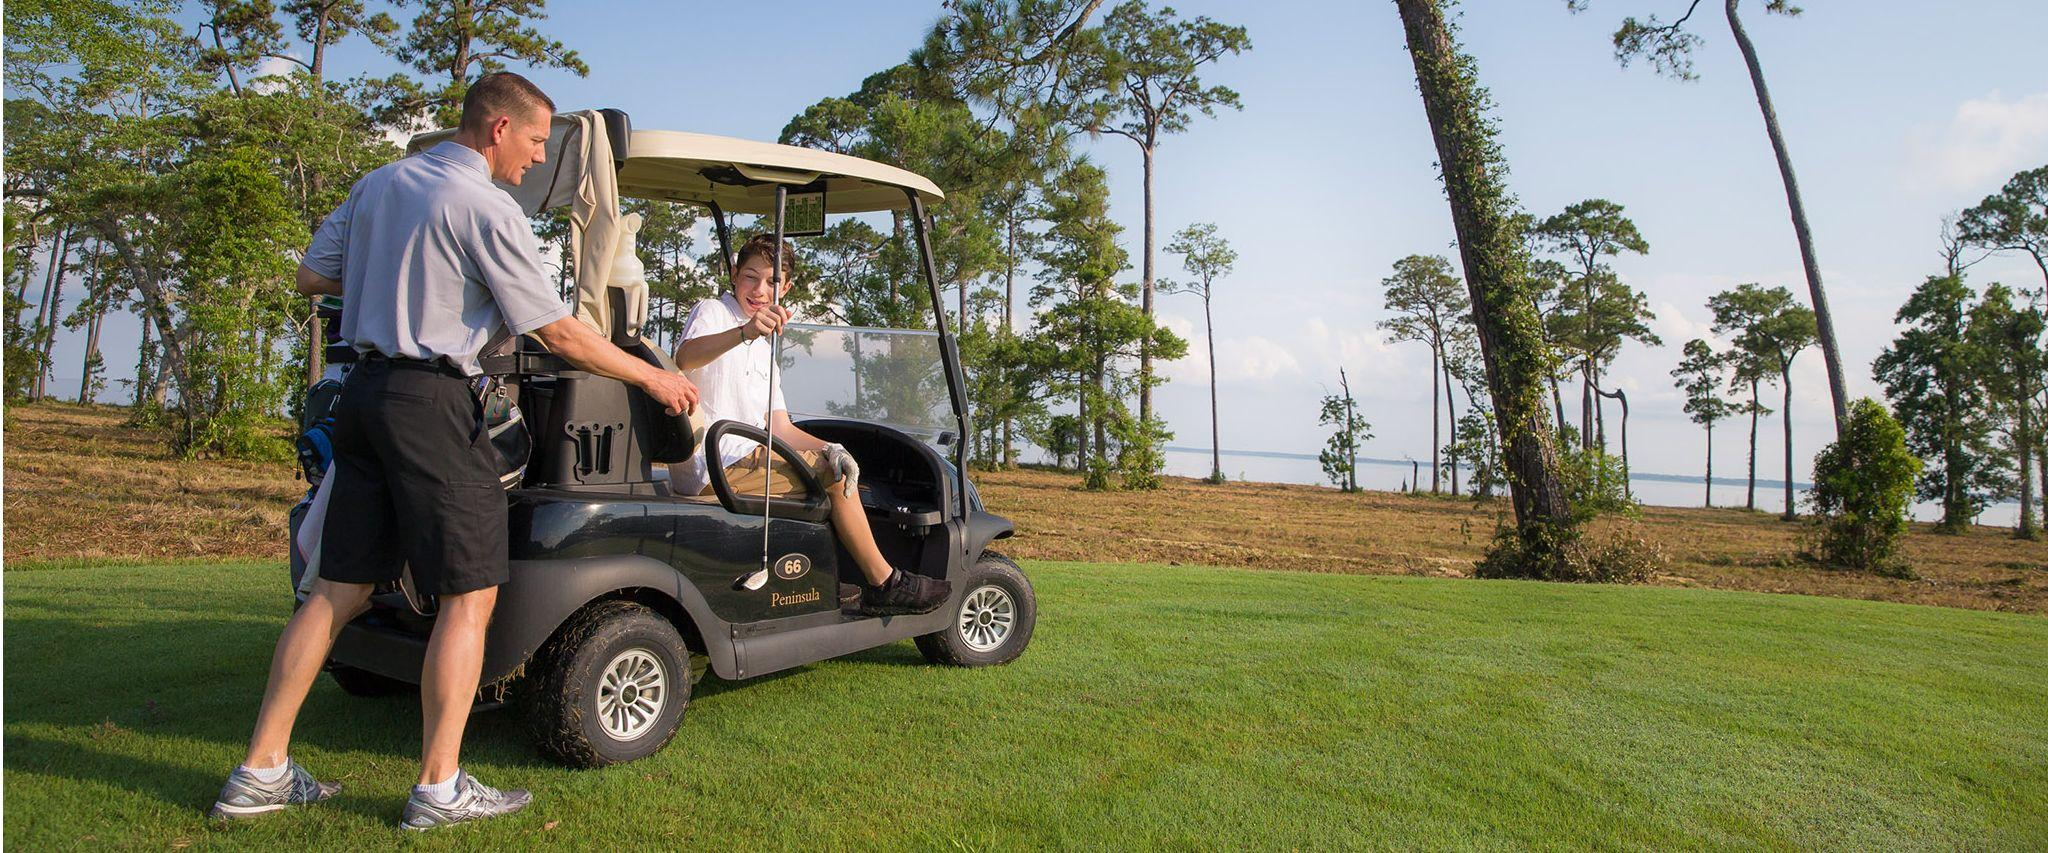 Father and son golfing in Gulf Shores, AL